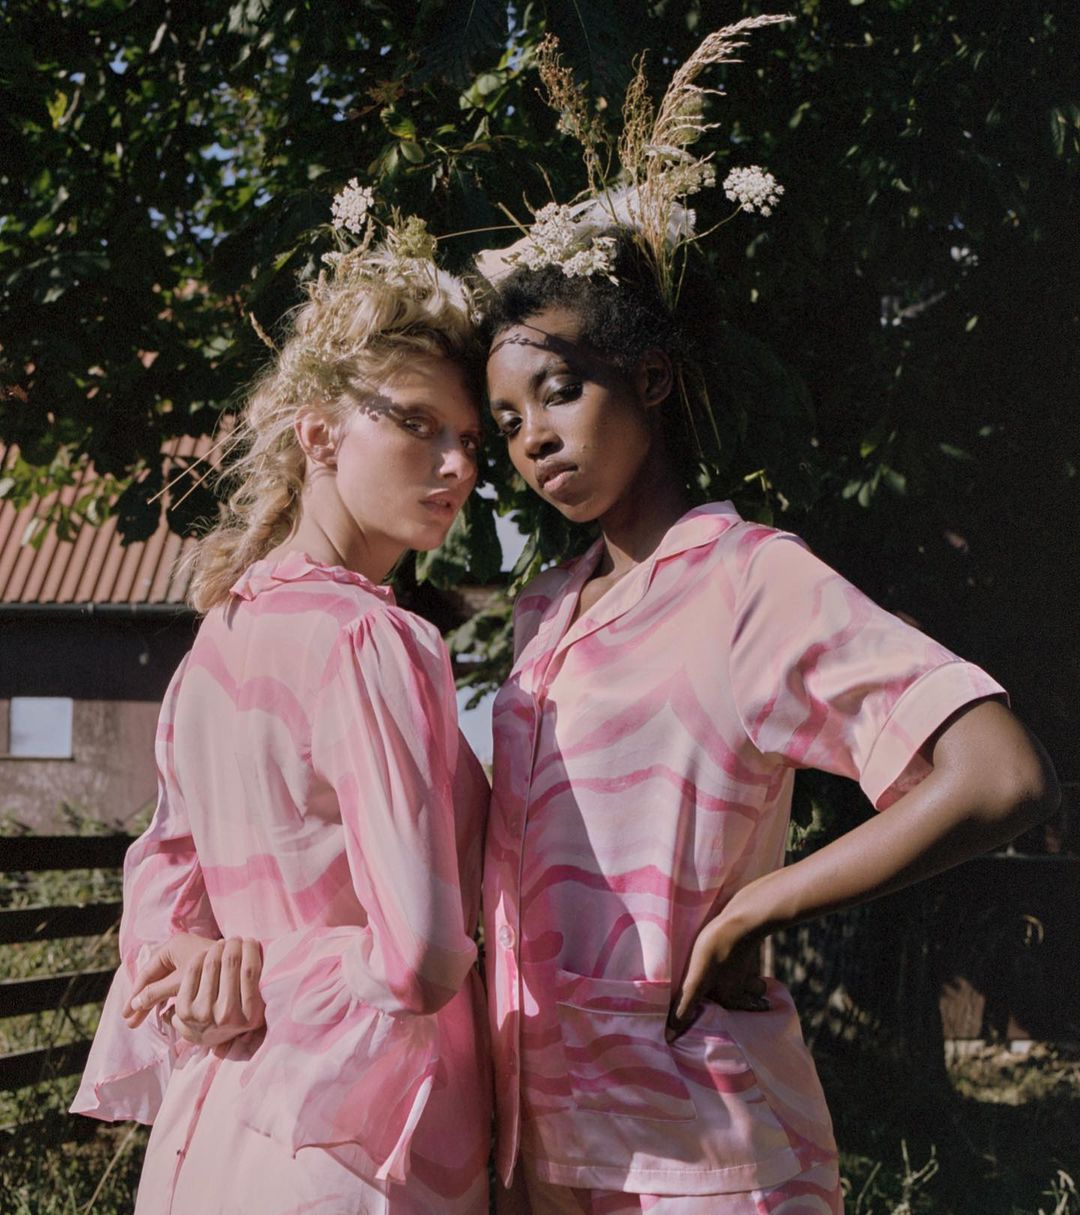 Two women wearing pink leaning on eachother